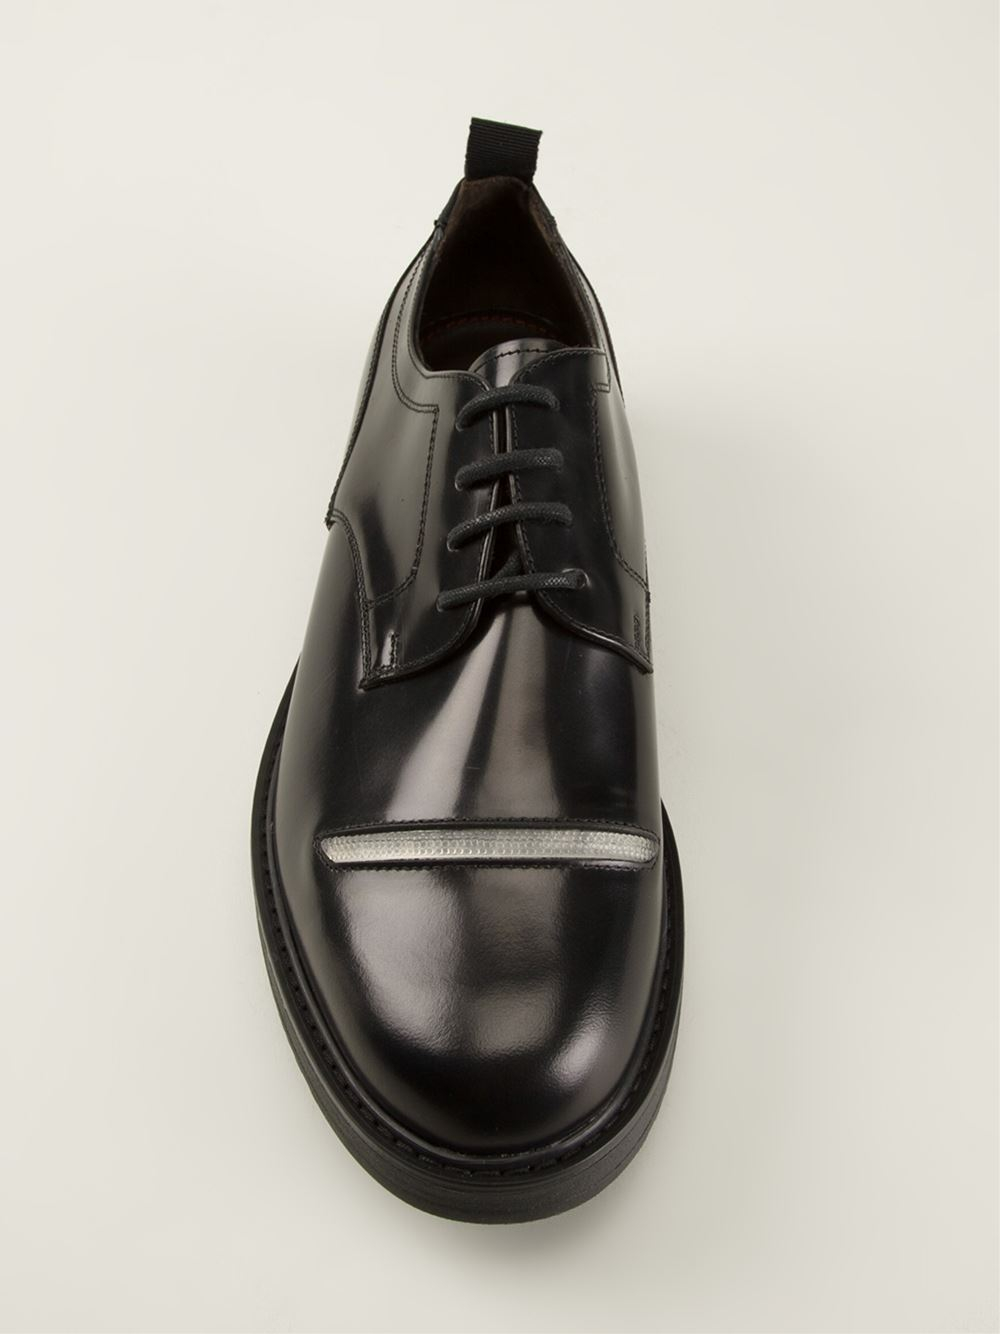 best website 270a7 71f00 pollini-black-zipped-toe-box-derby-shoes-product-1-23166843-1-873772105-normal.jpeg